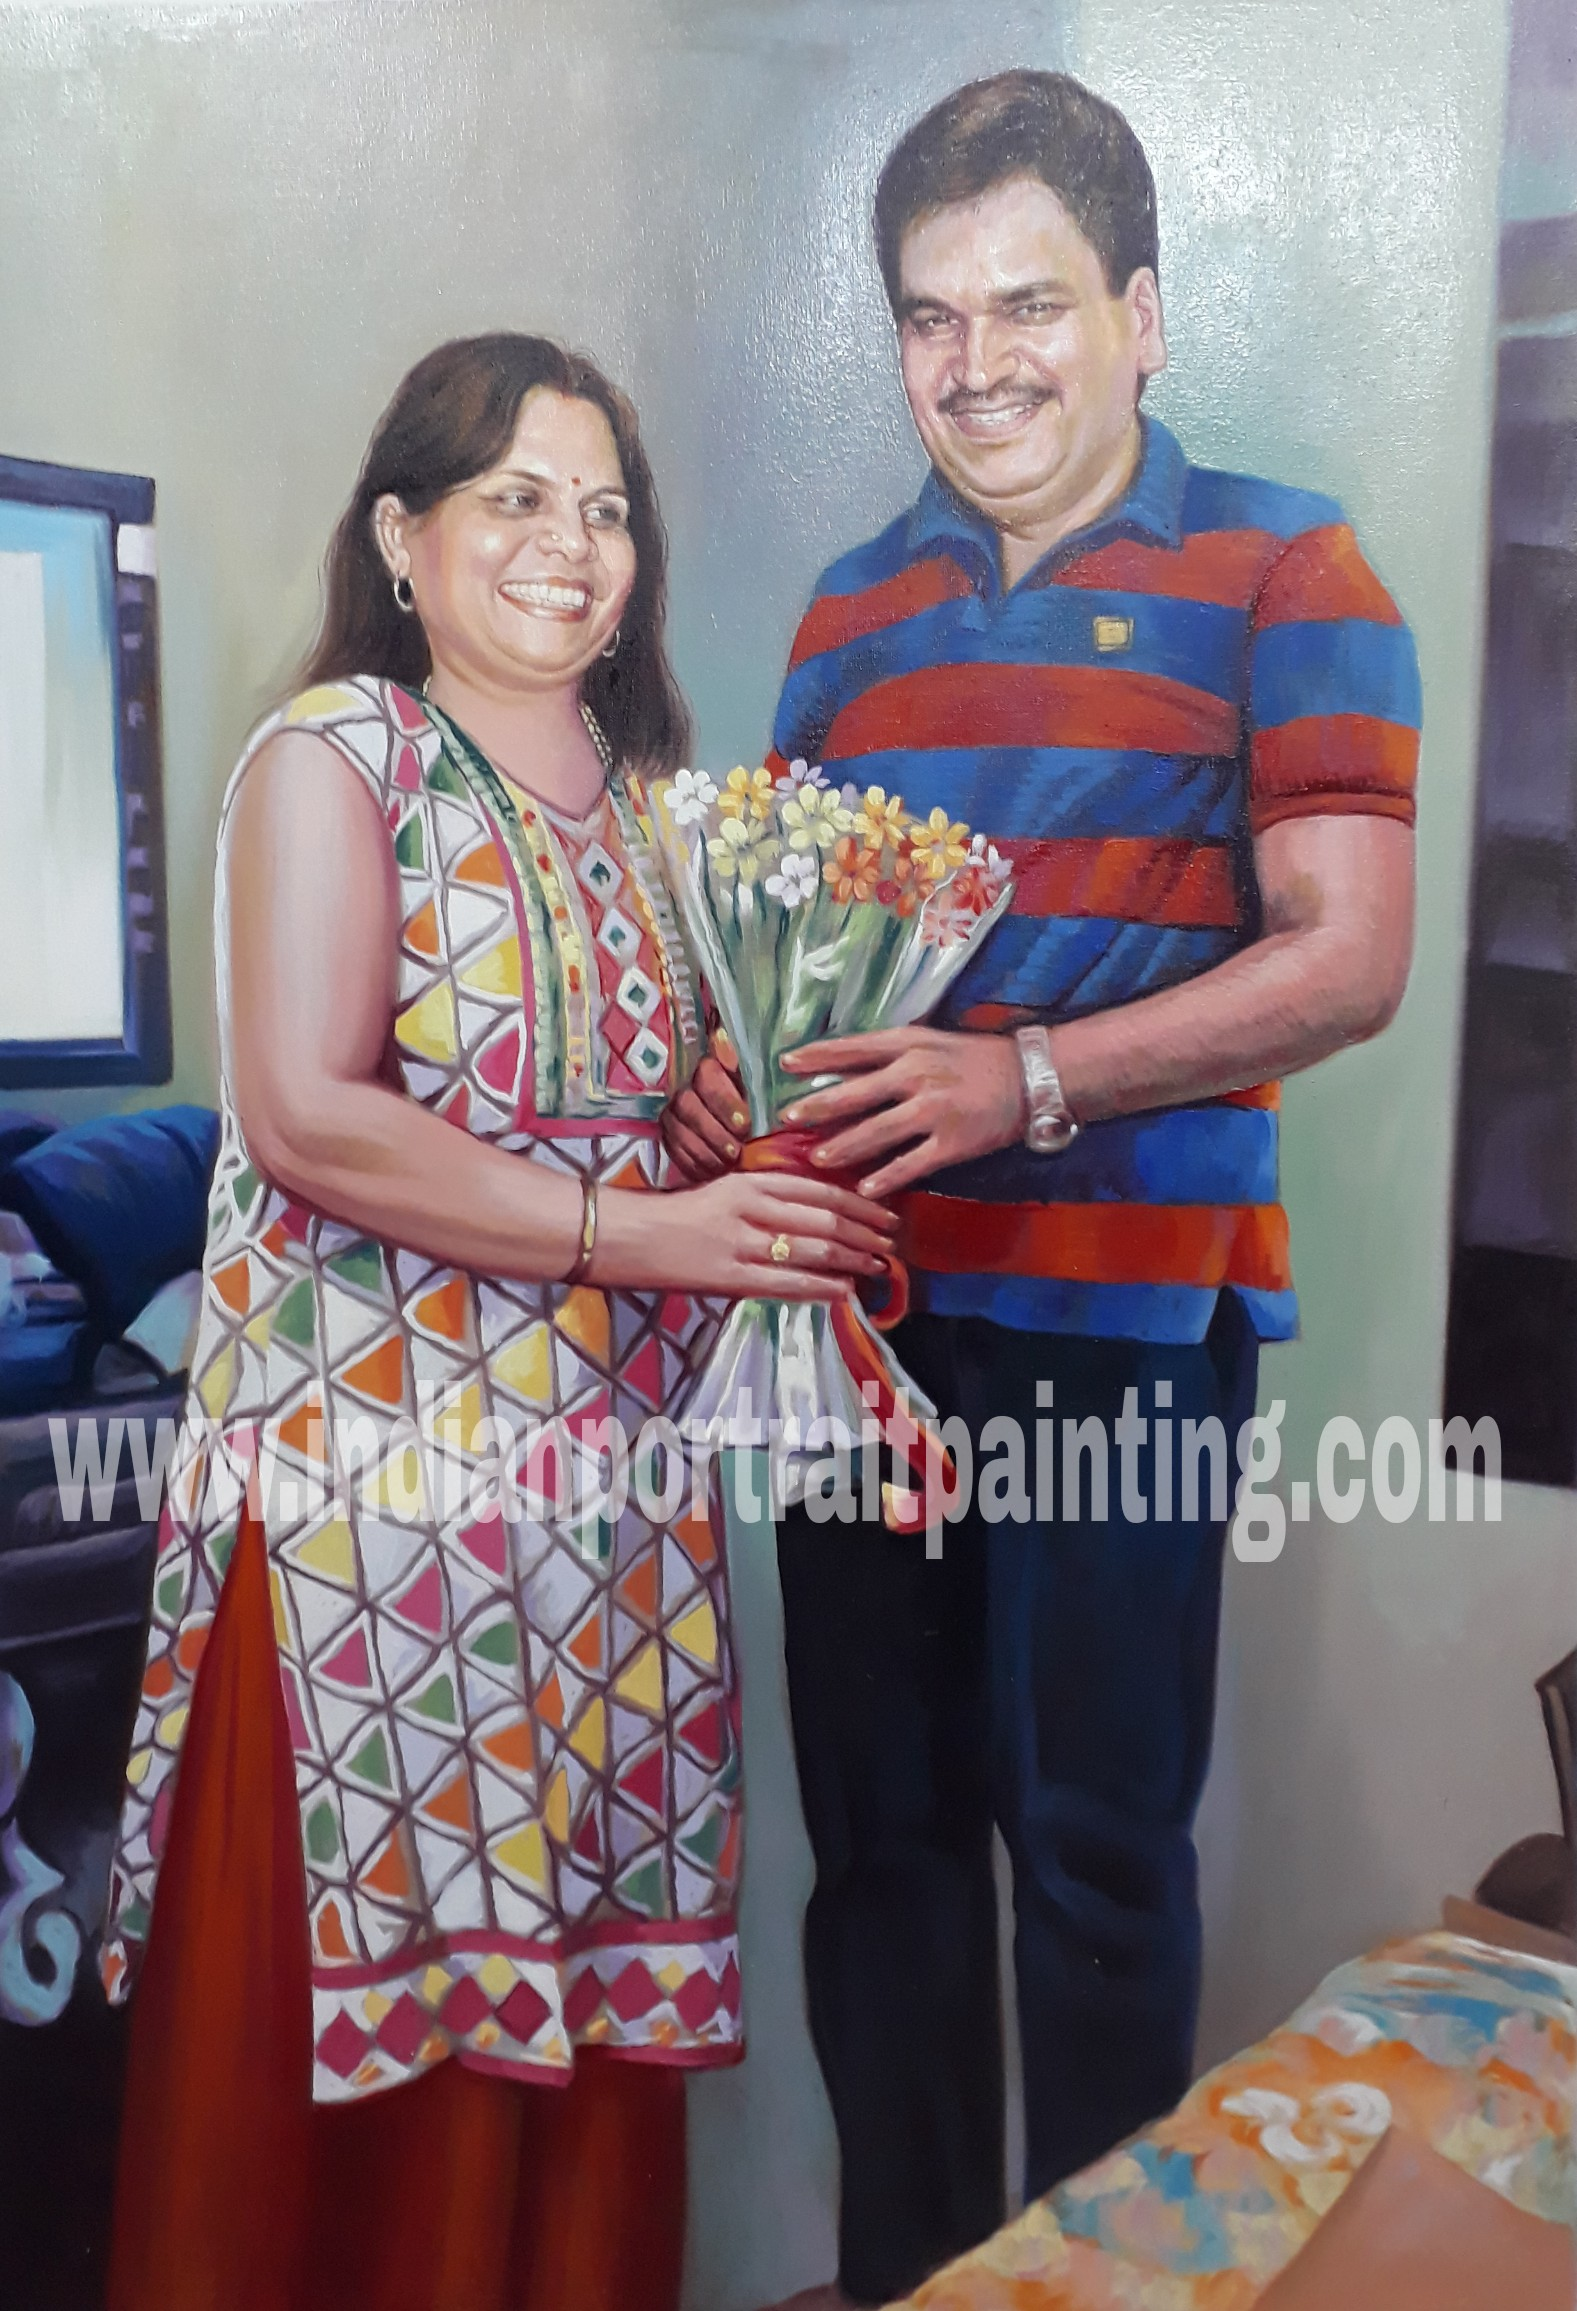 hand painted portraits from photos for gift